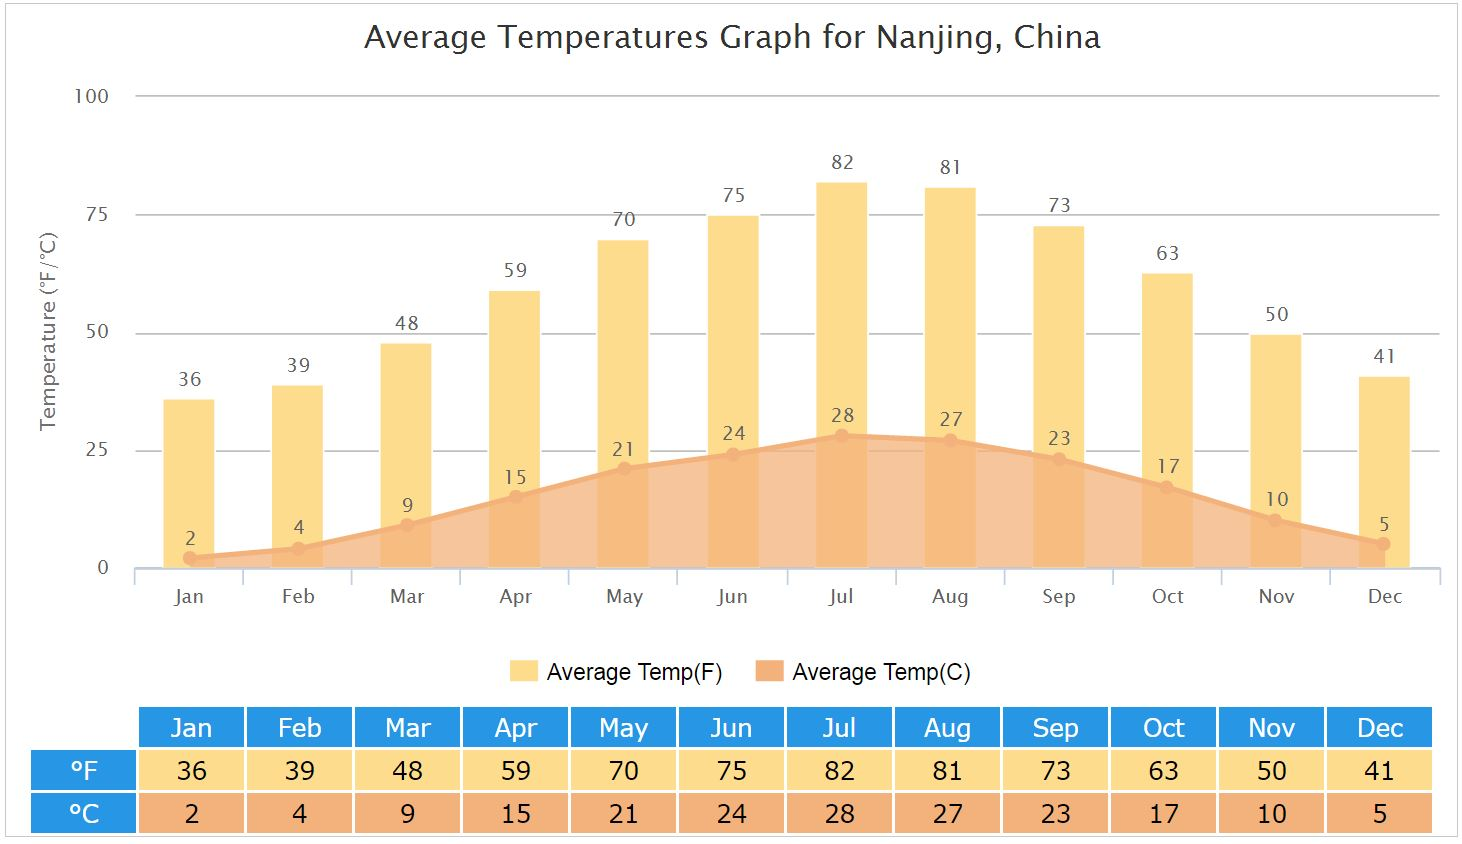 Average Temperatures Graph for Nanjing, China